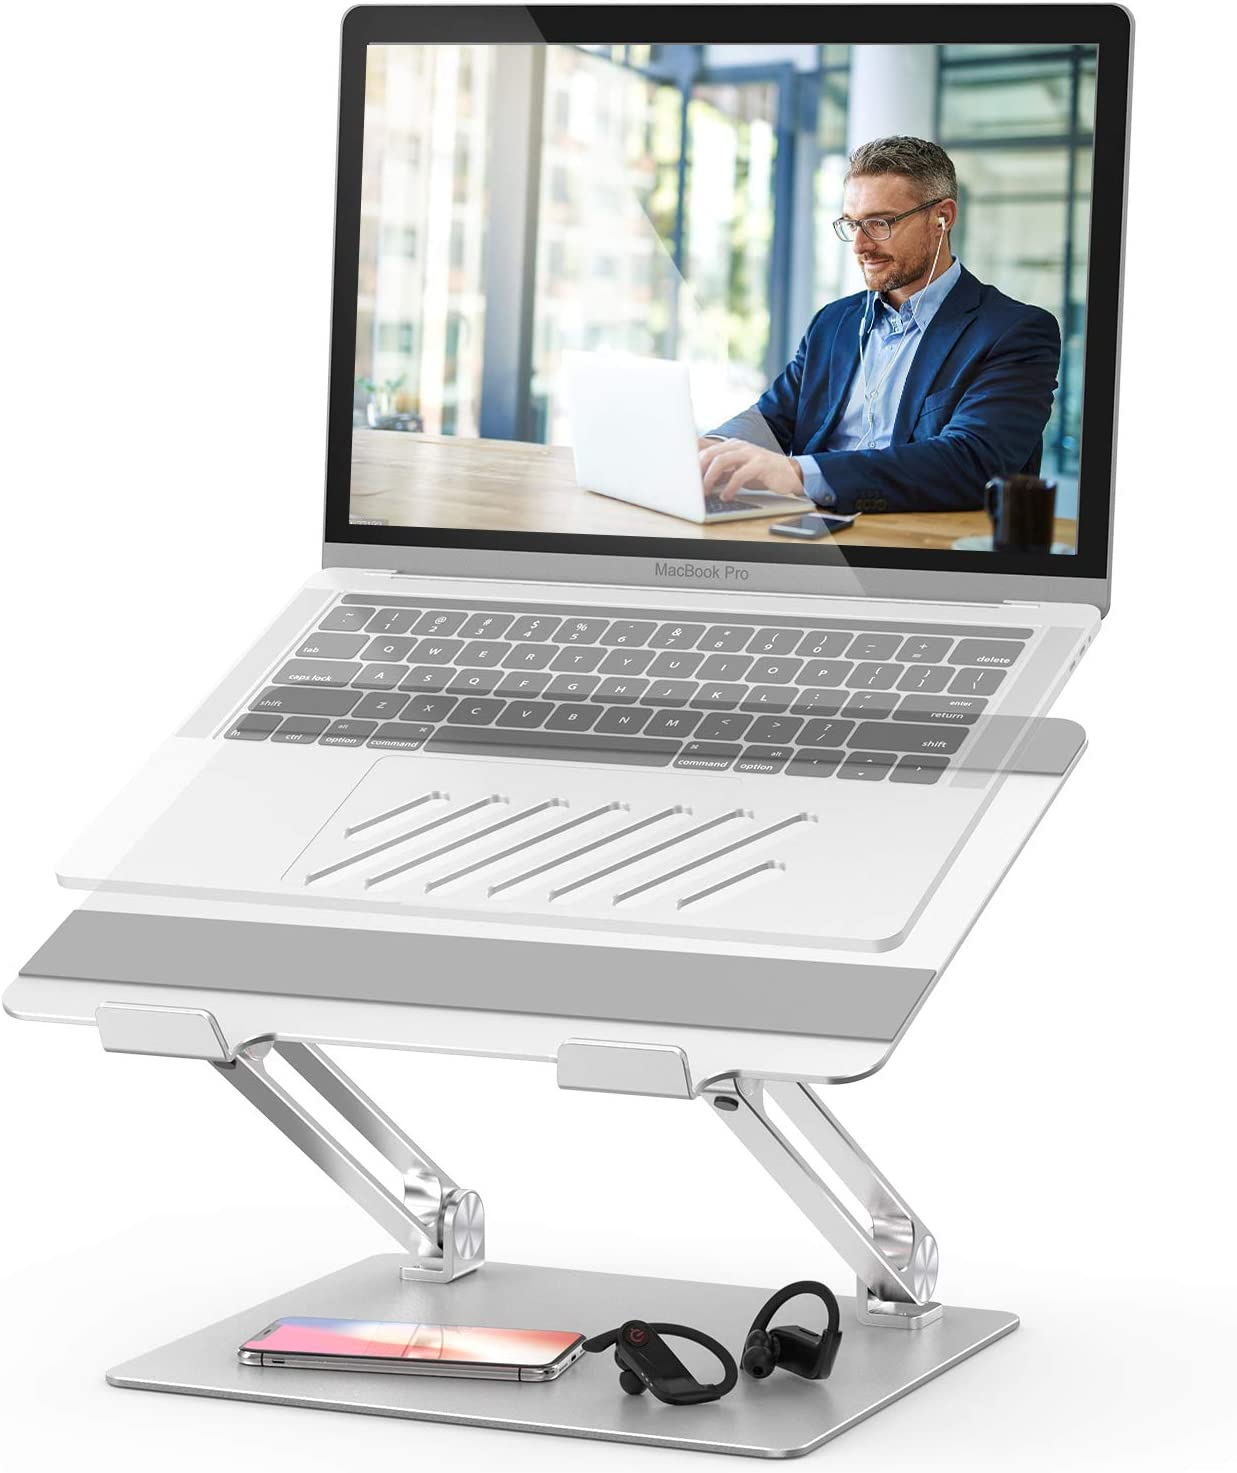 Laptop Stand, FYSMY Adjustable Aluminum Ergonomic Portable Notebook Stand Holder with Heat-Vent to Elevate Laptop, Computer Riser Compatible for MacBook,Dell,HP,Lenovo More 10-17